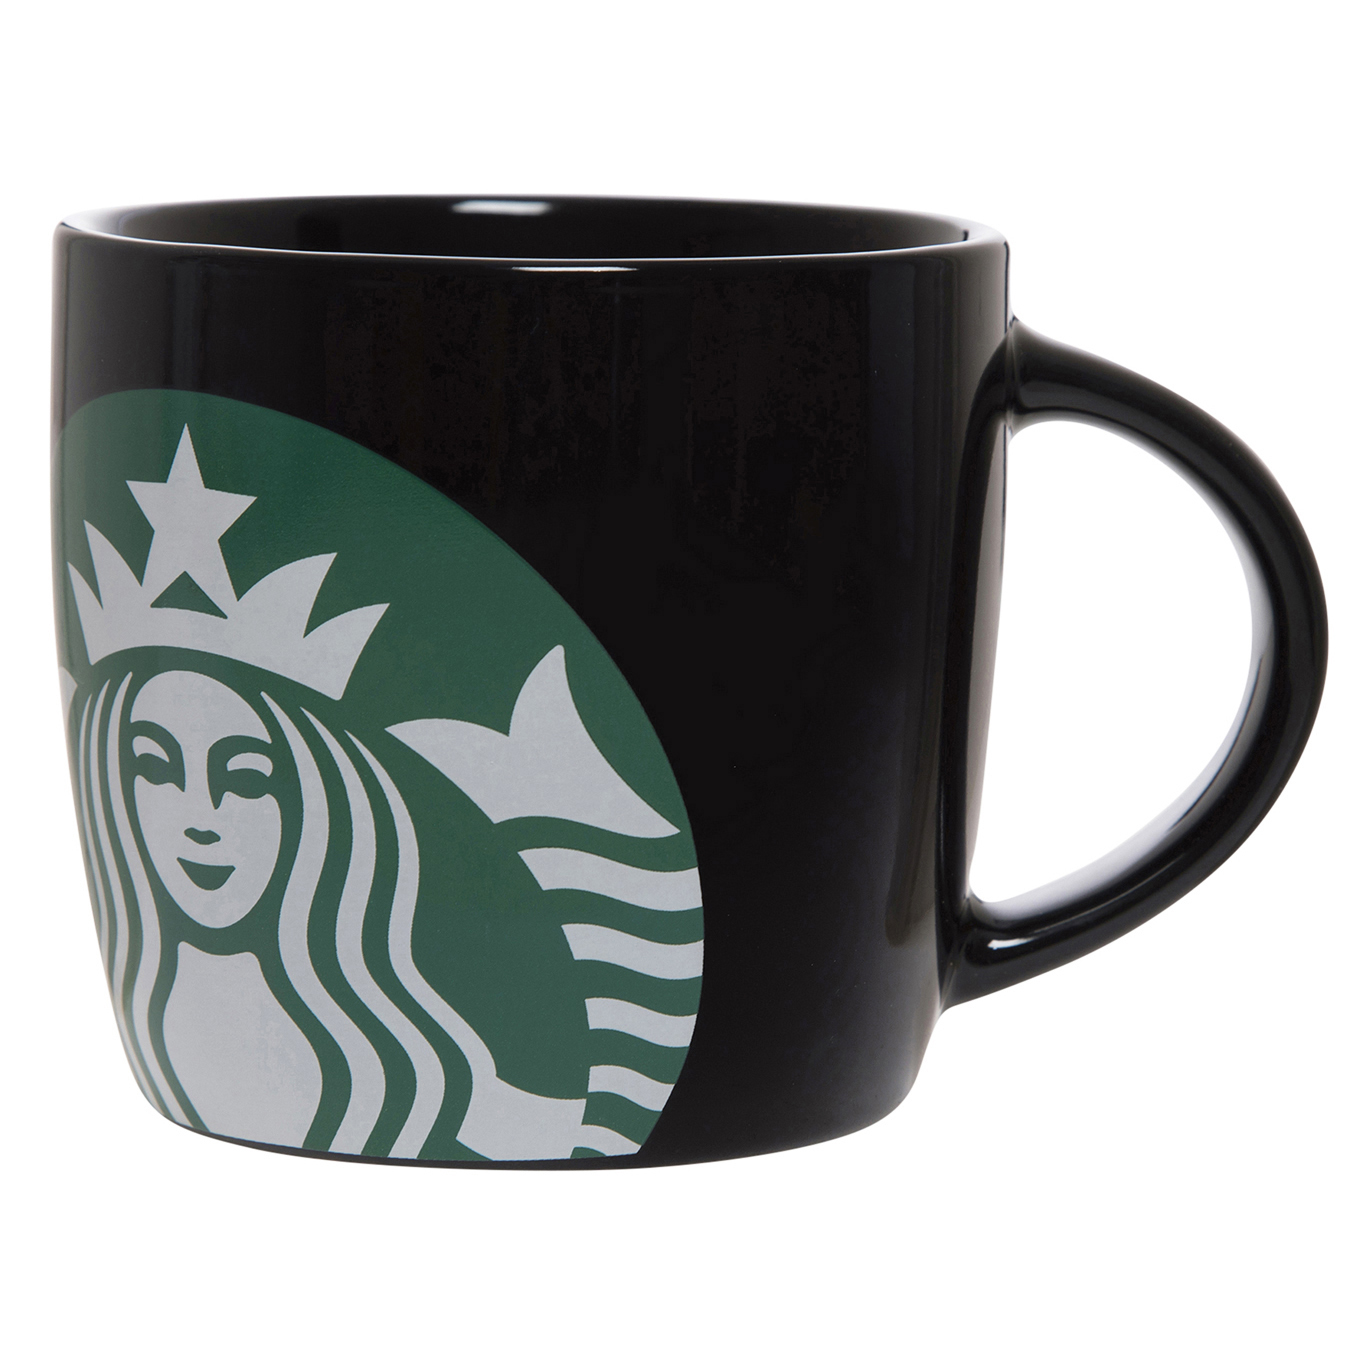 Starbucks 14 Ounce Ceramic Black Mug